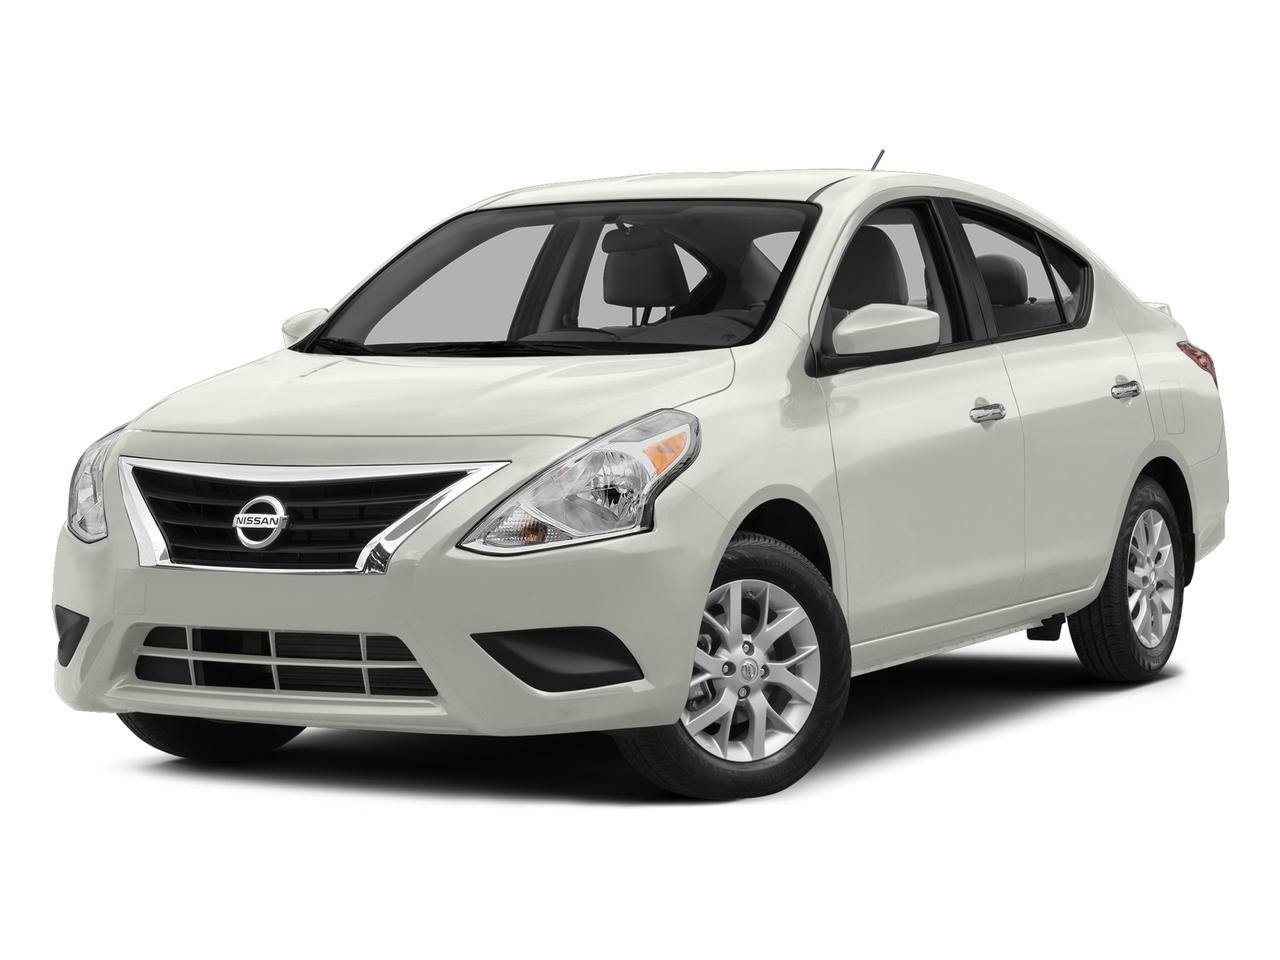 2015 Nissan Versa Vehicle Photo in Medina, OH 44256